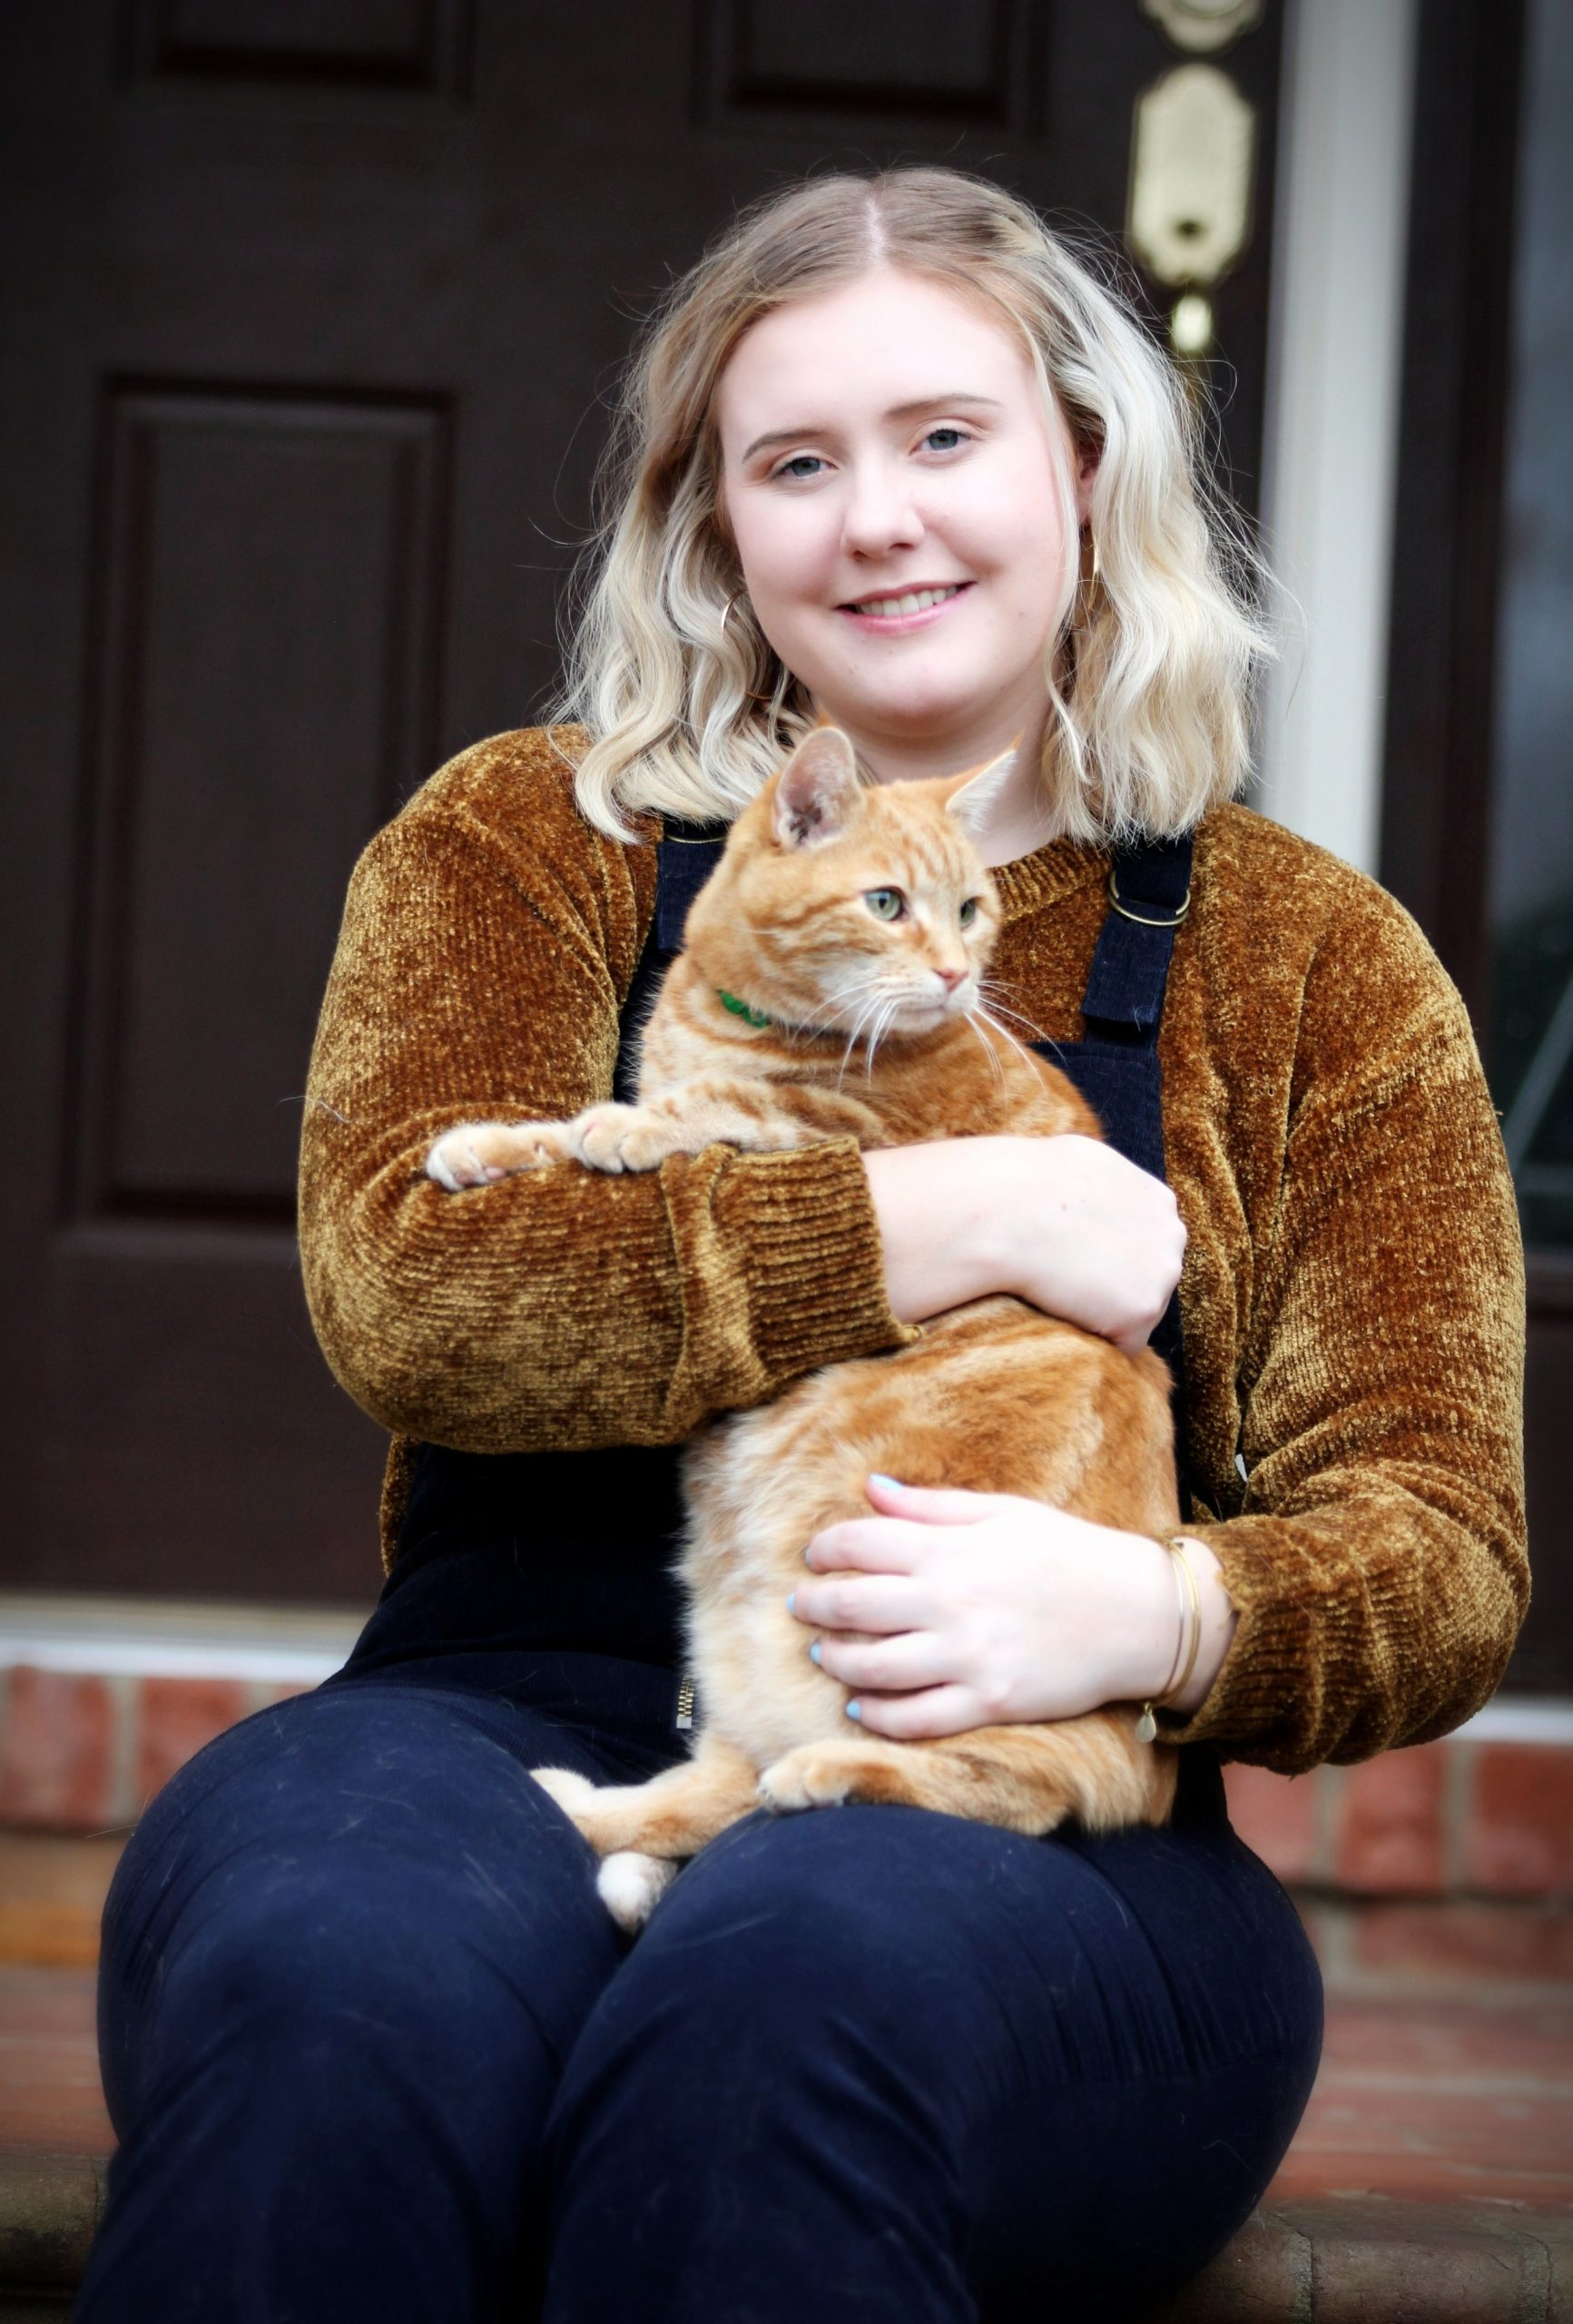 A4 - Girl with Cat